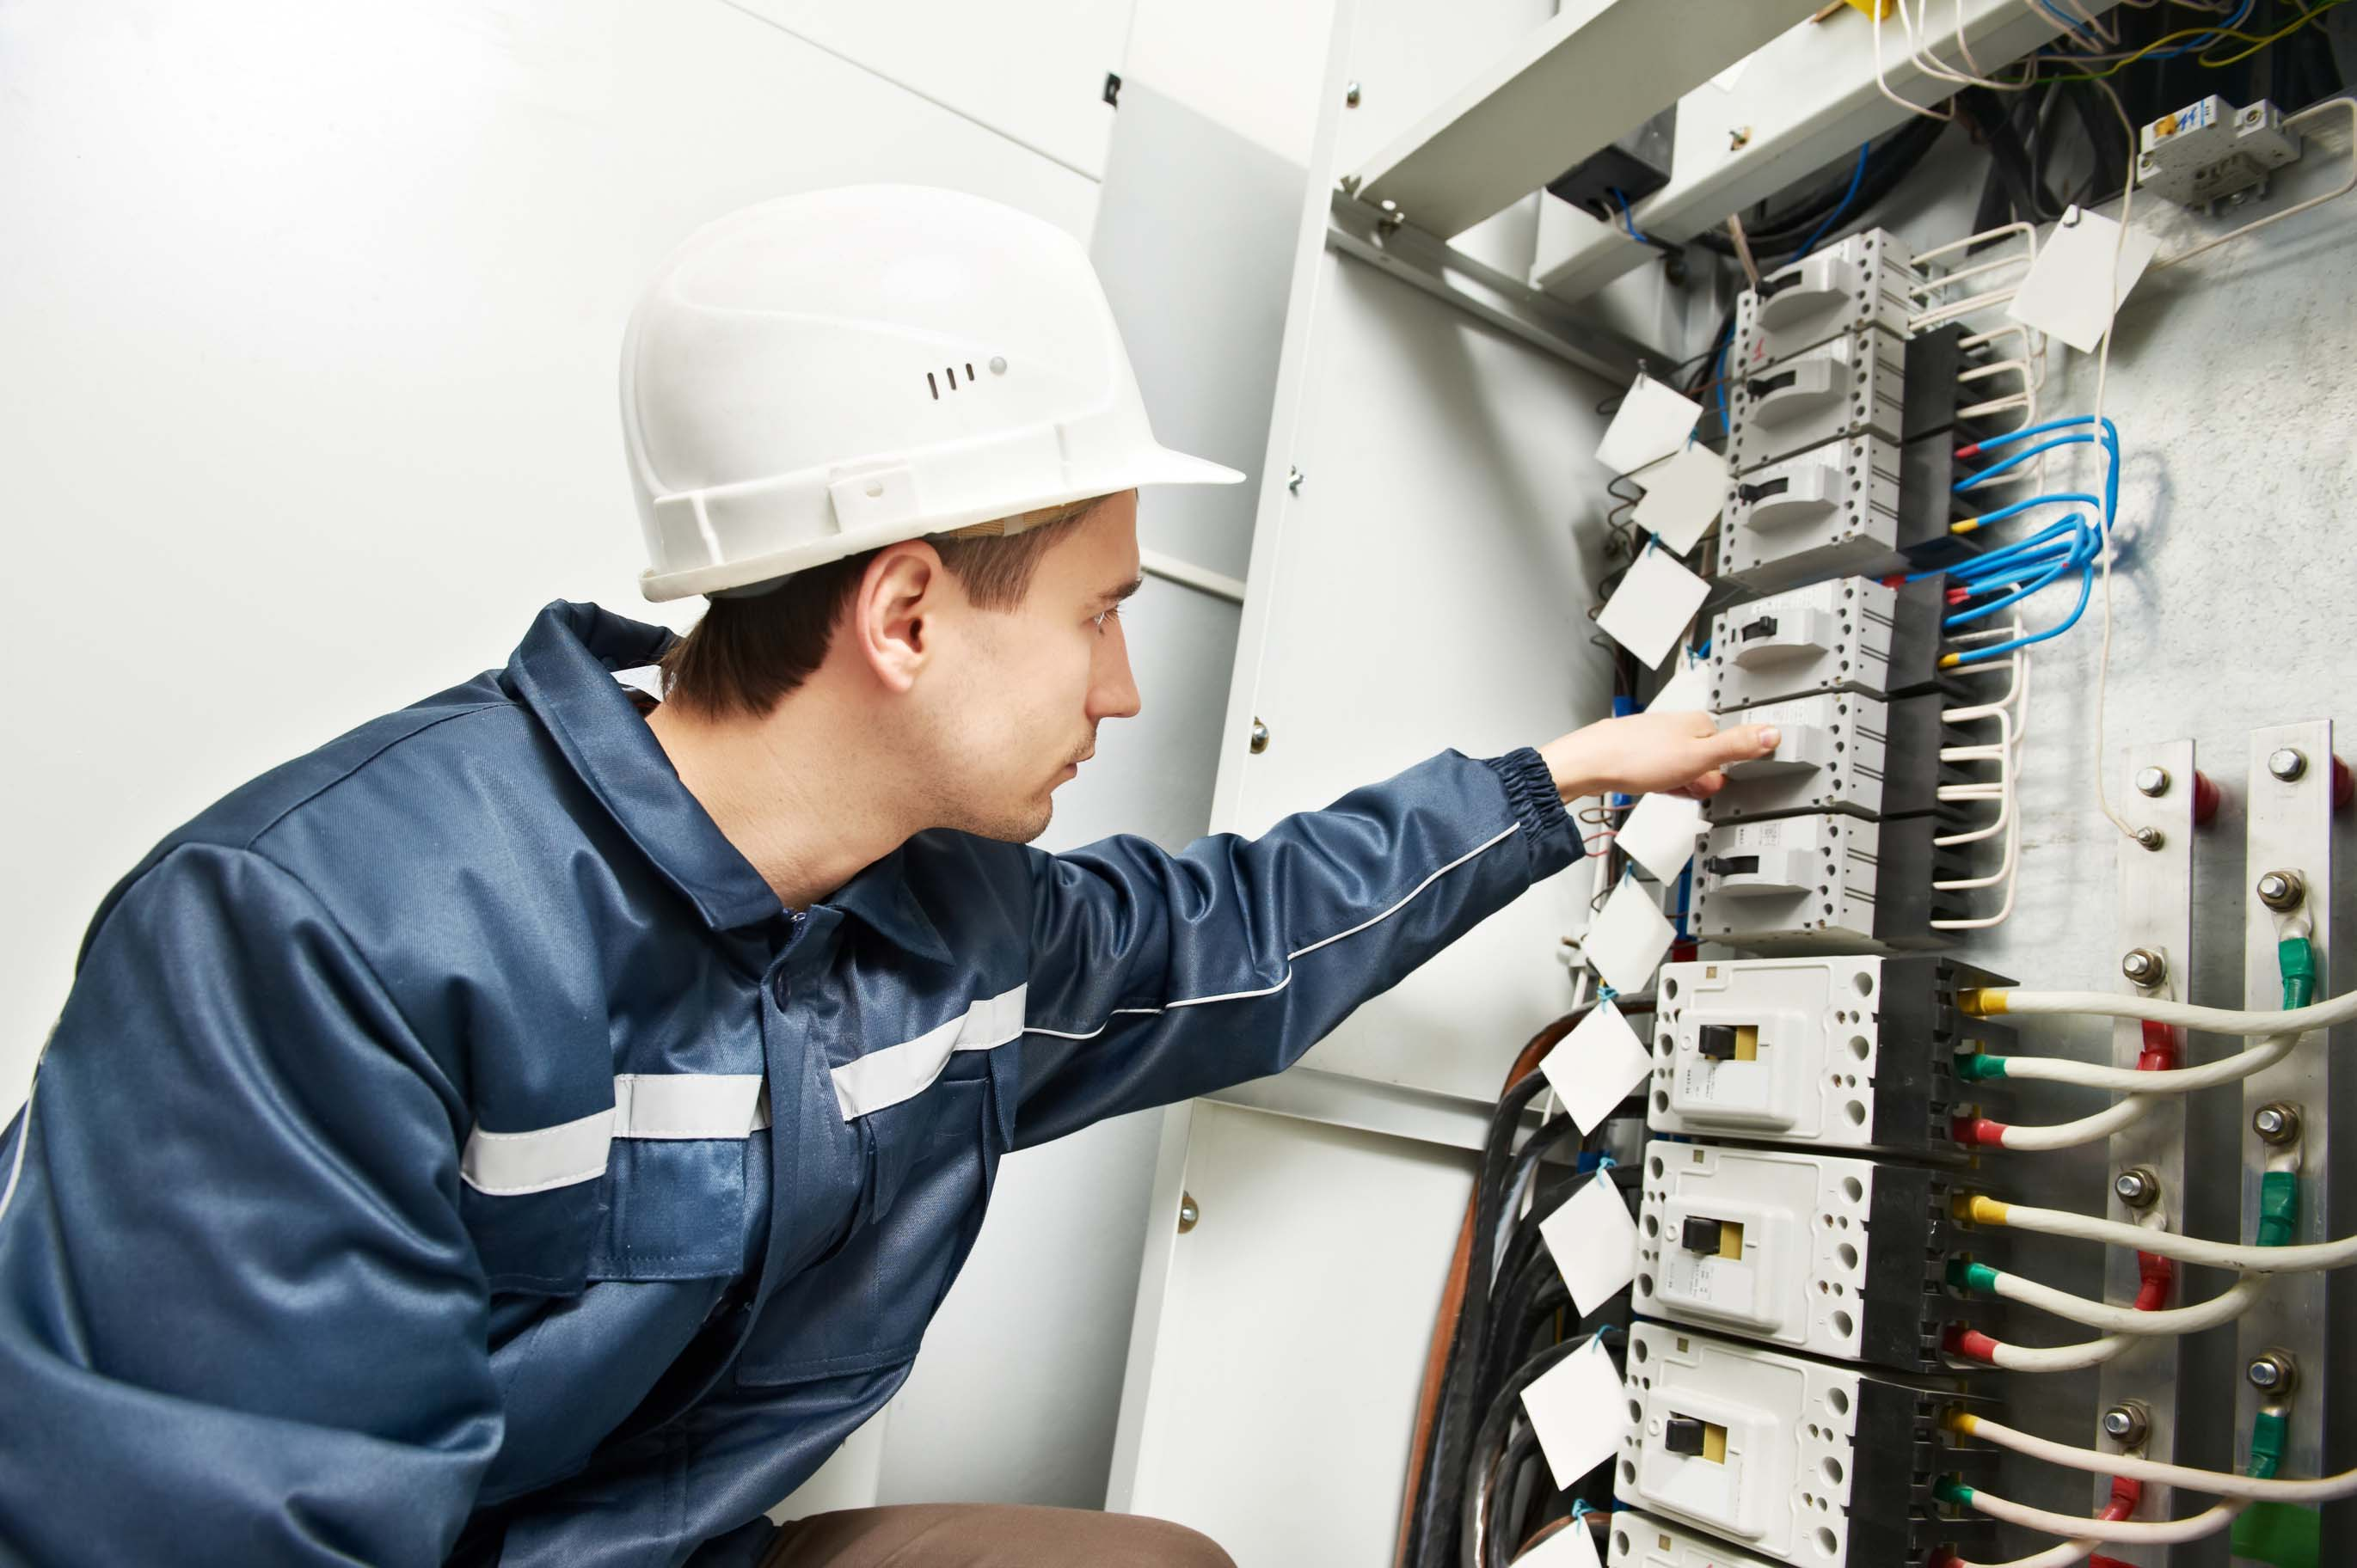 One electrician builder at work inspecting high voltage power electric line distribution fuseboard switching on